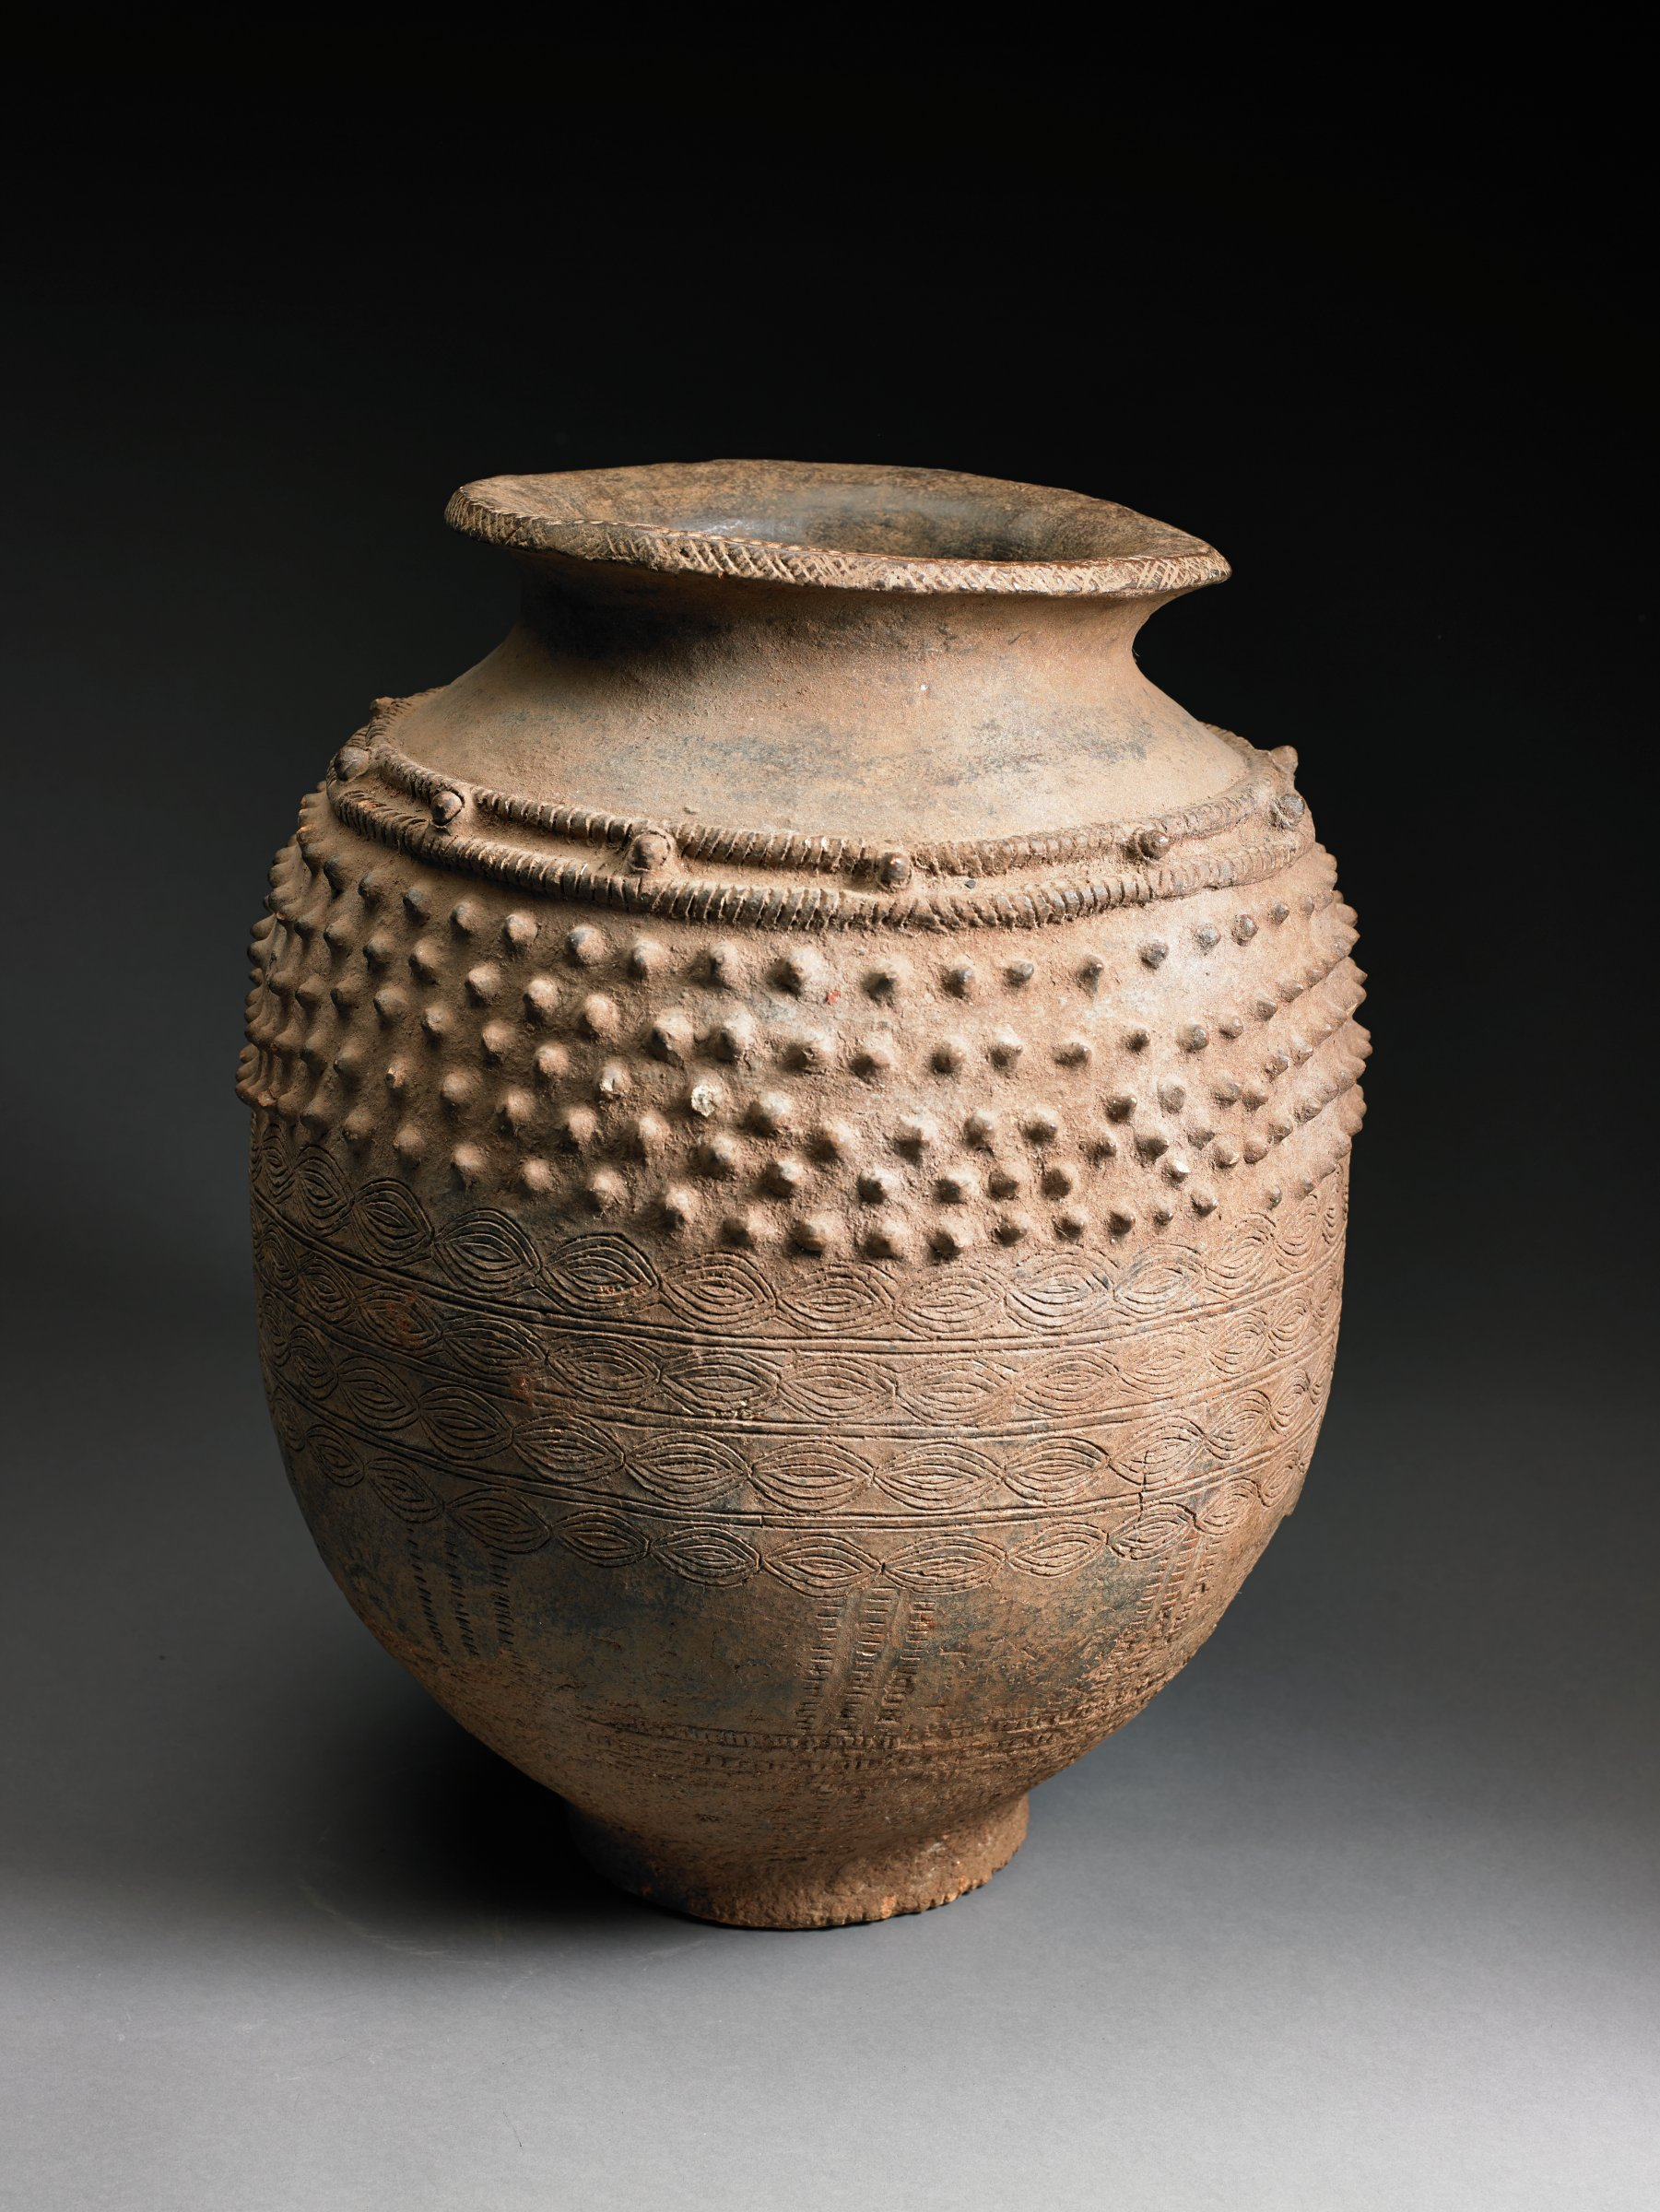 Oval-shaped vessel tapers to narrow, flat base. Narrow curved neck has flaring rim; shoulder has five rows of raised bumps. Body of vessel has four rows of repeating incised garlands.